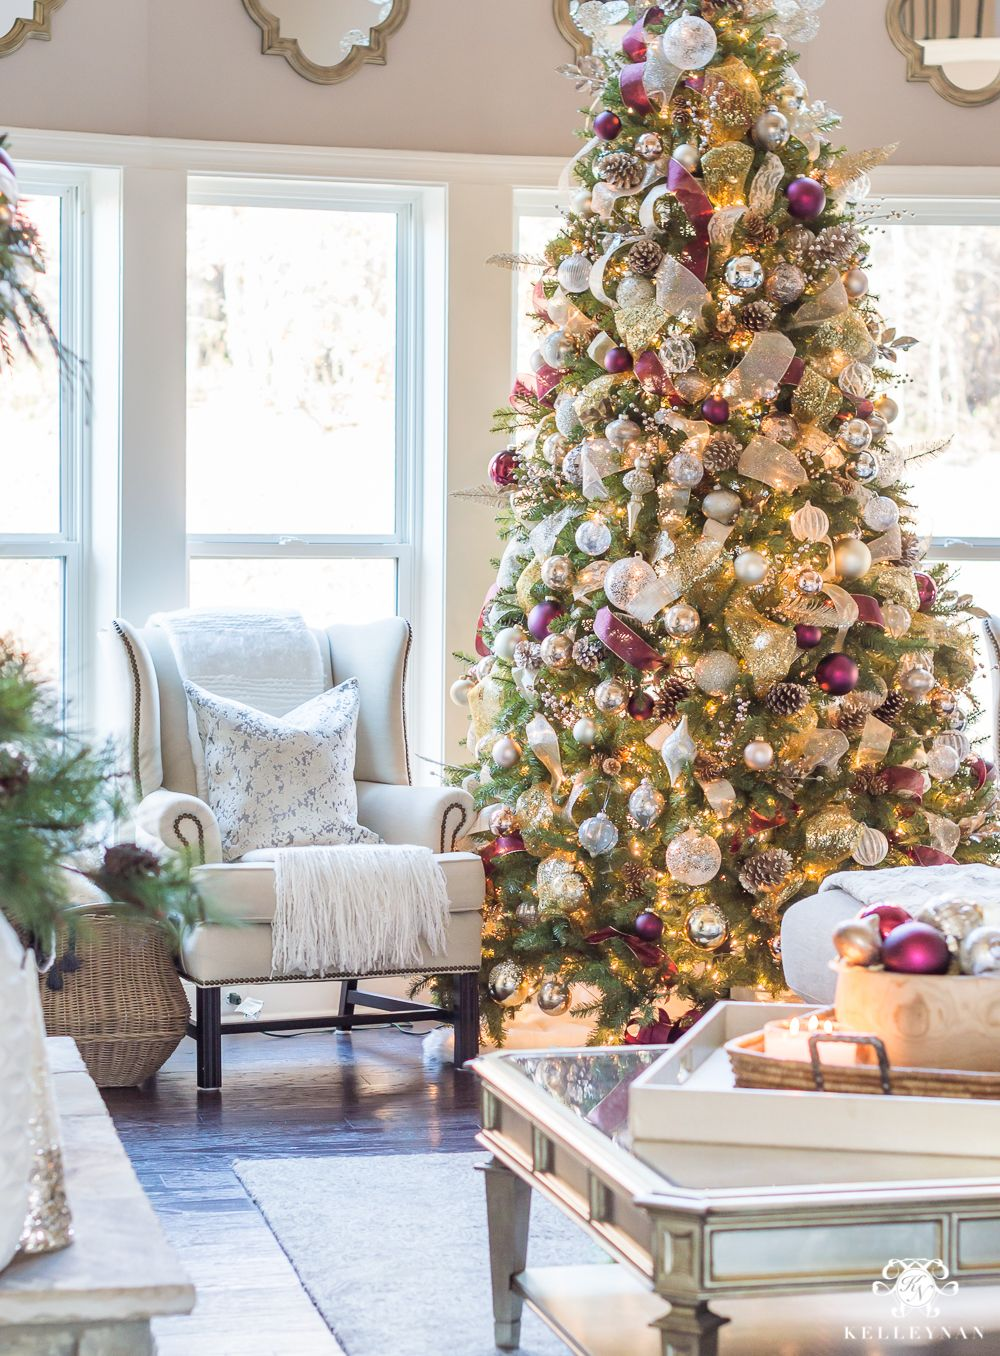 2017 Christmas Home Tour Champagne Wine And Other Christmas Color Schemes Kelley Nan Christmas Colour Schemes Christmas Tree Colour Scheme Champagne Christmas Tree